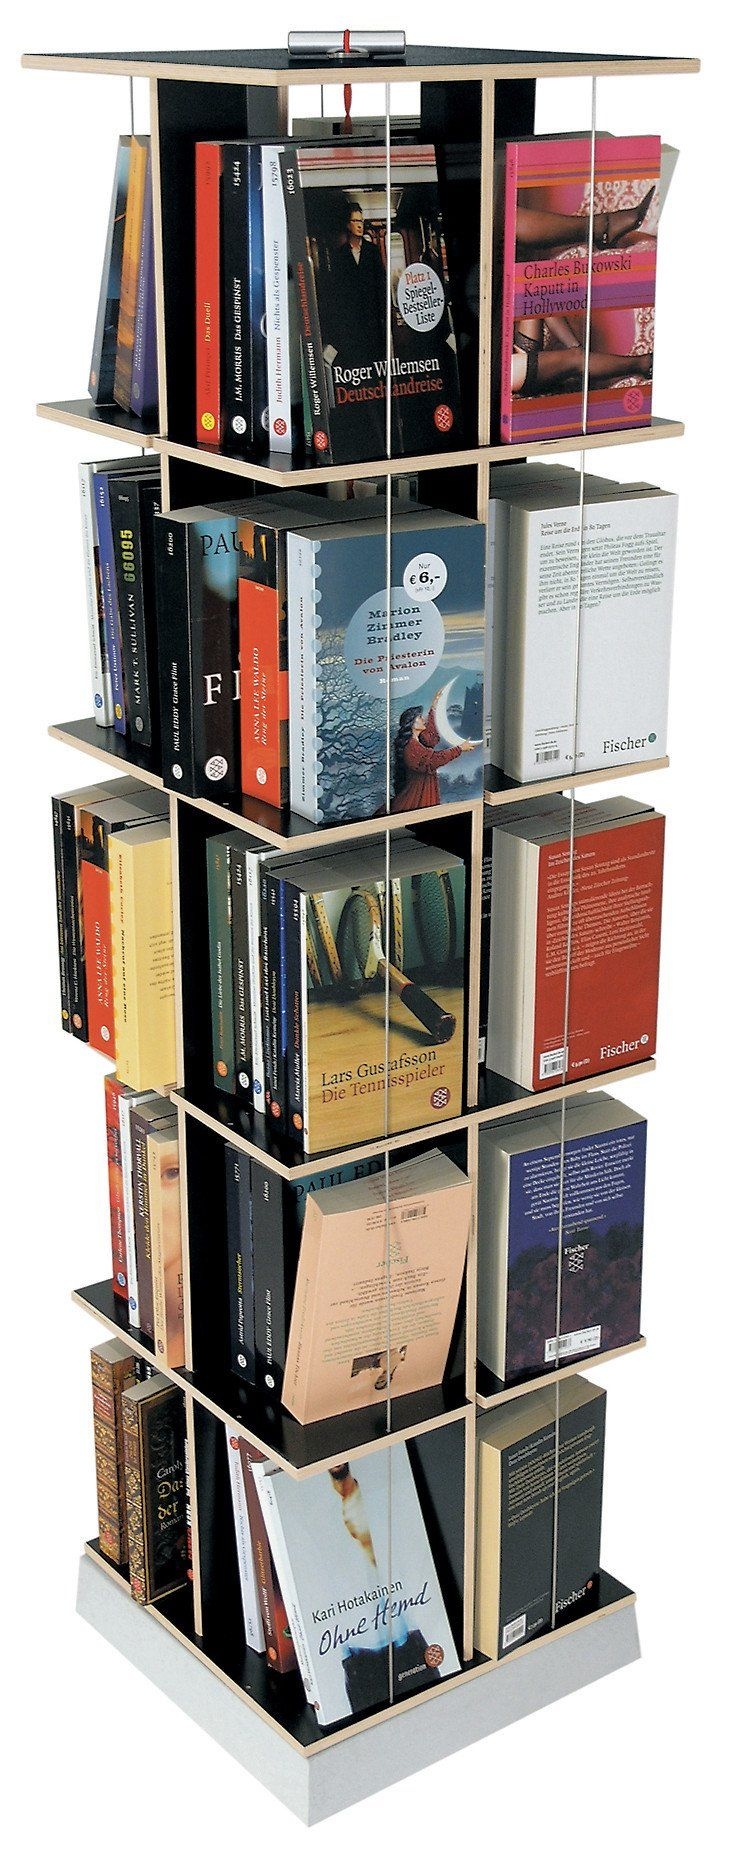 D    Tom Fischer 2004M   Moormann Buchstabler is a pivotable rack for pocket books and DVDs. With purchases kept on a minimum, a maximum amount of books...